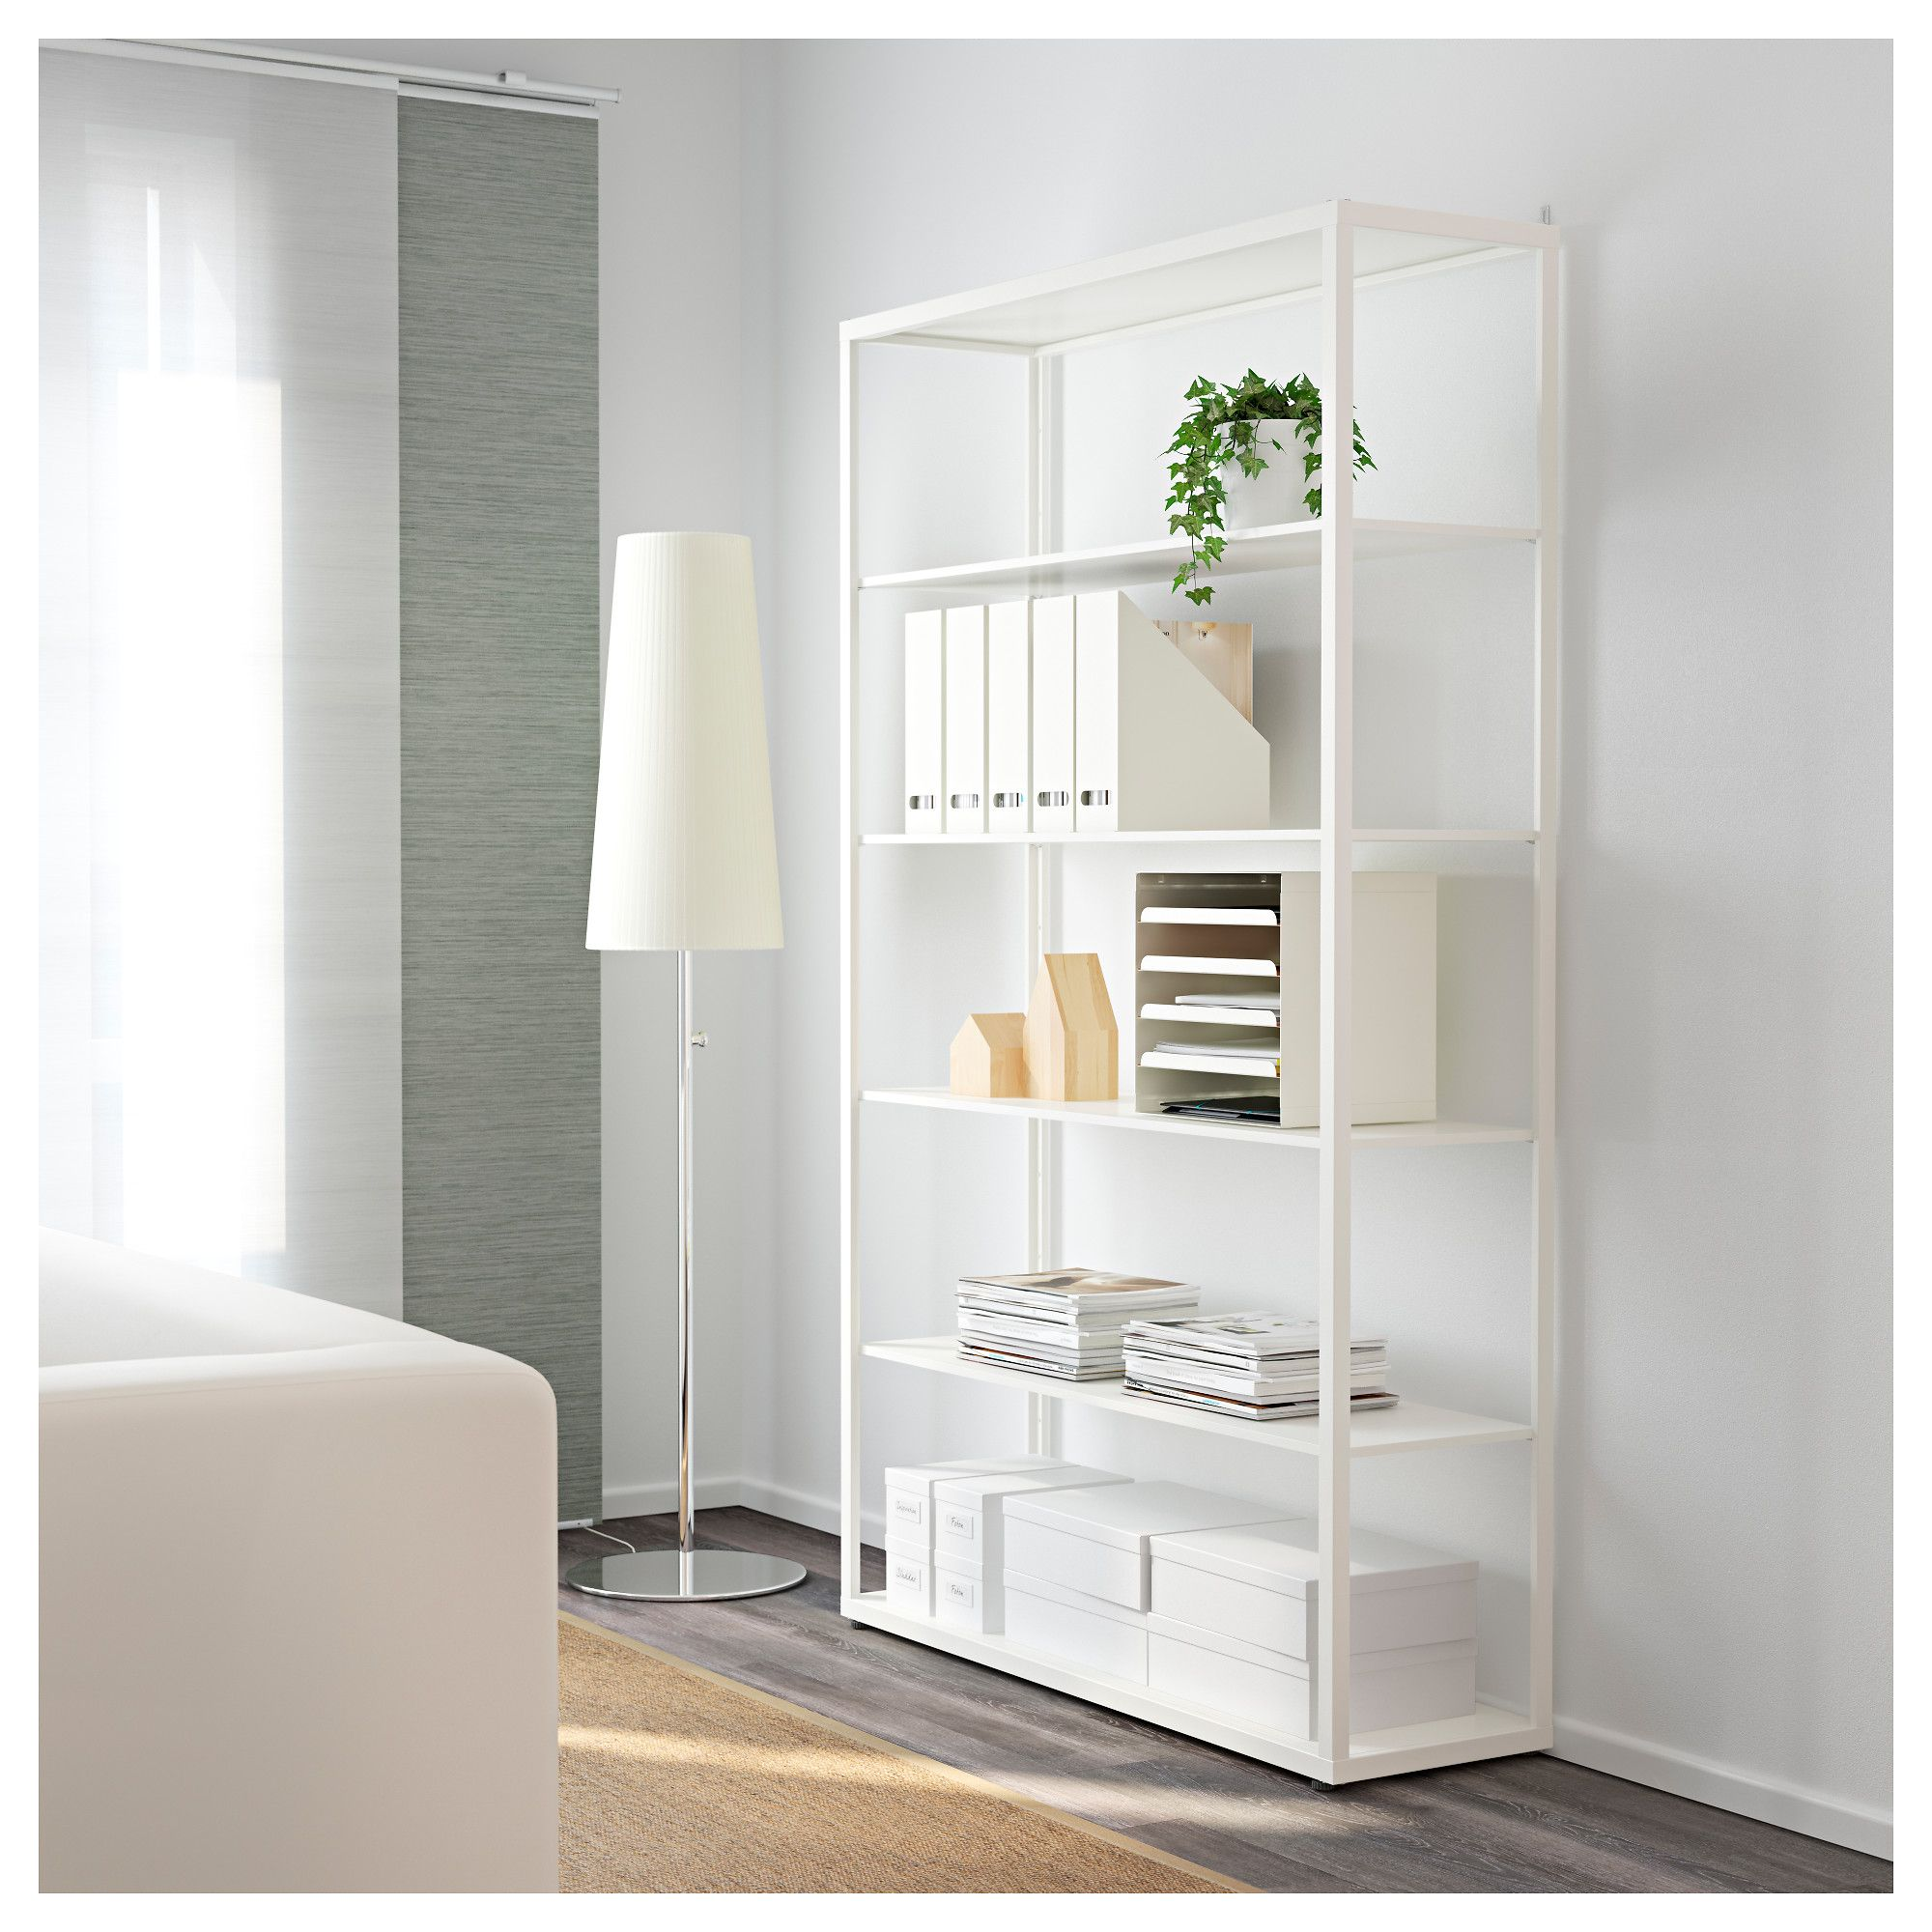 fj lkinge shelf unit white basement ikea shelving unit ikea shelf unit white shelving unit. Black Bedroom Furniture Sets. Home Design Ideas